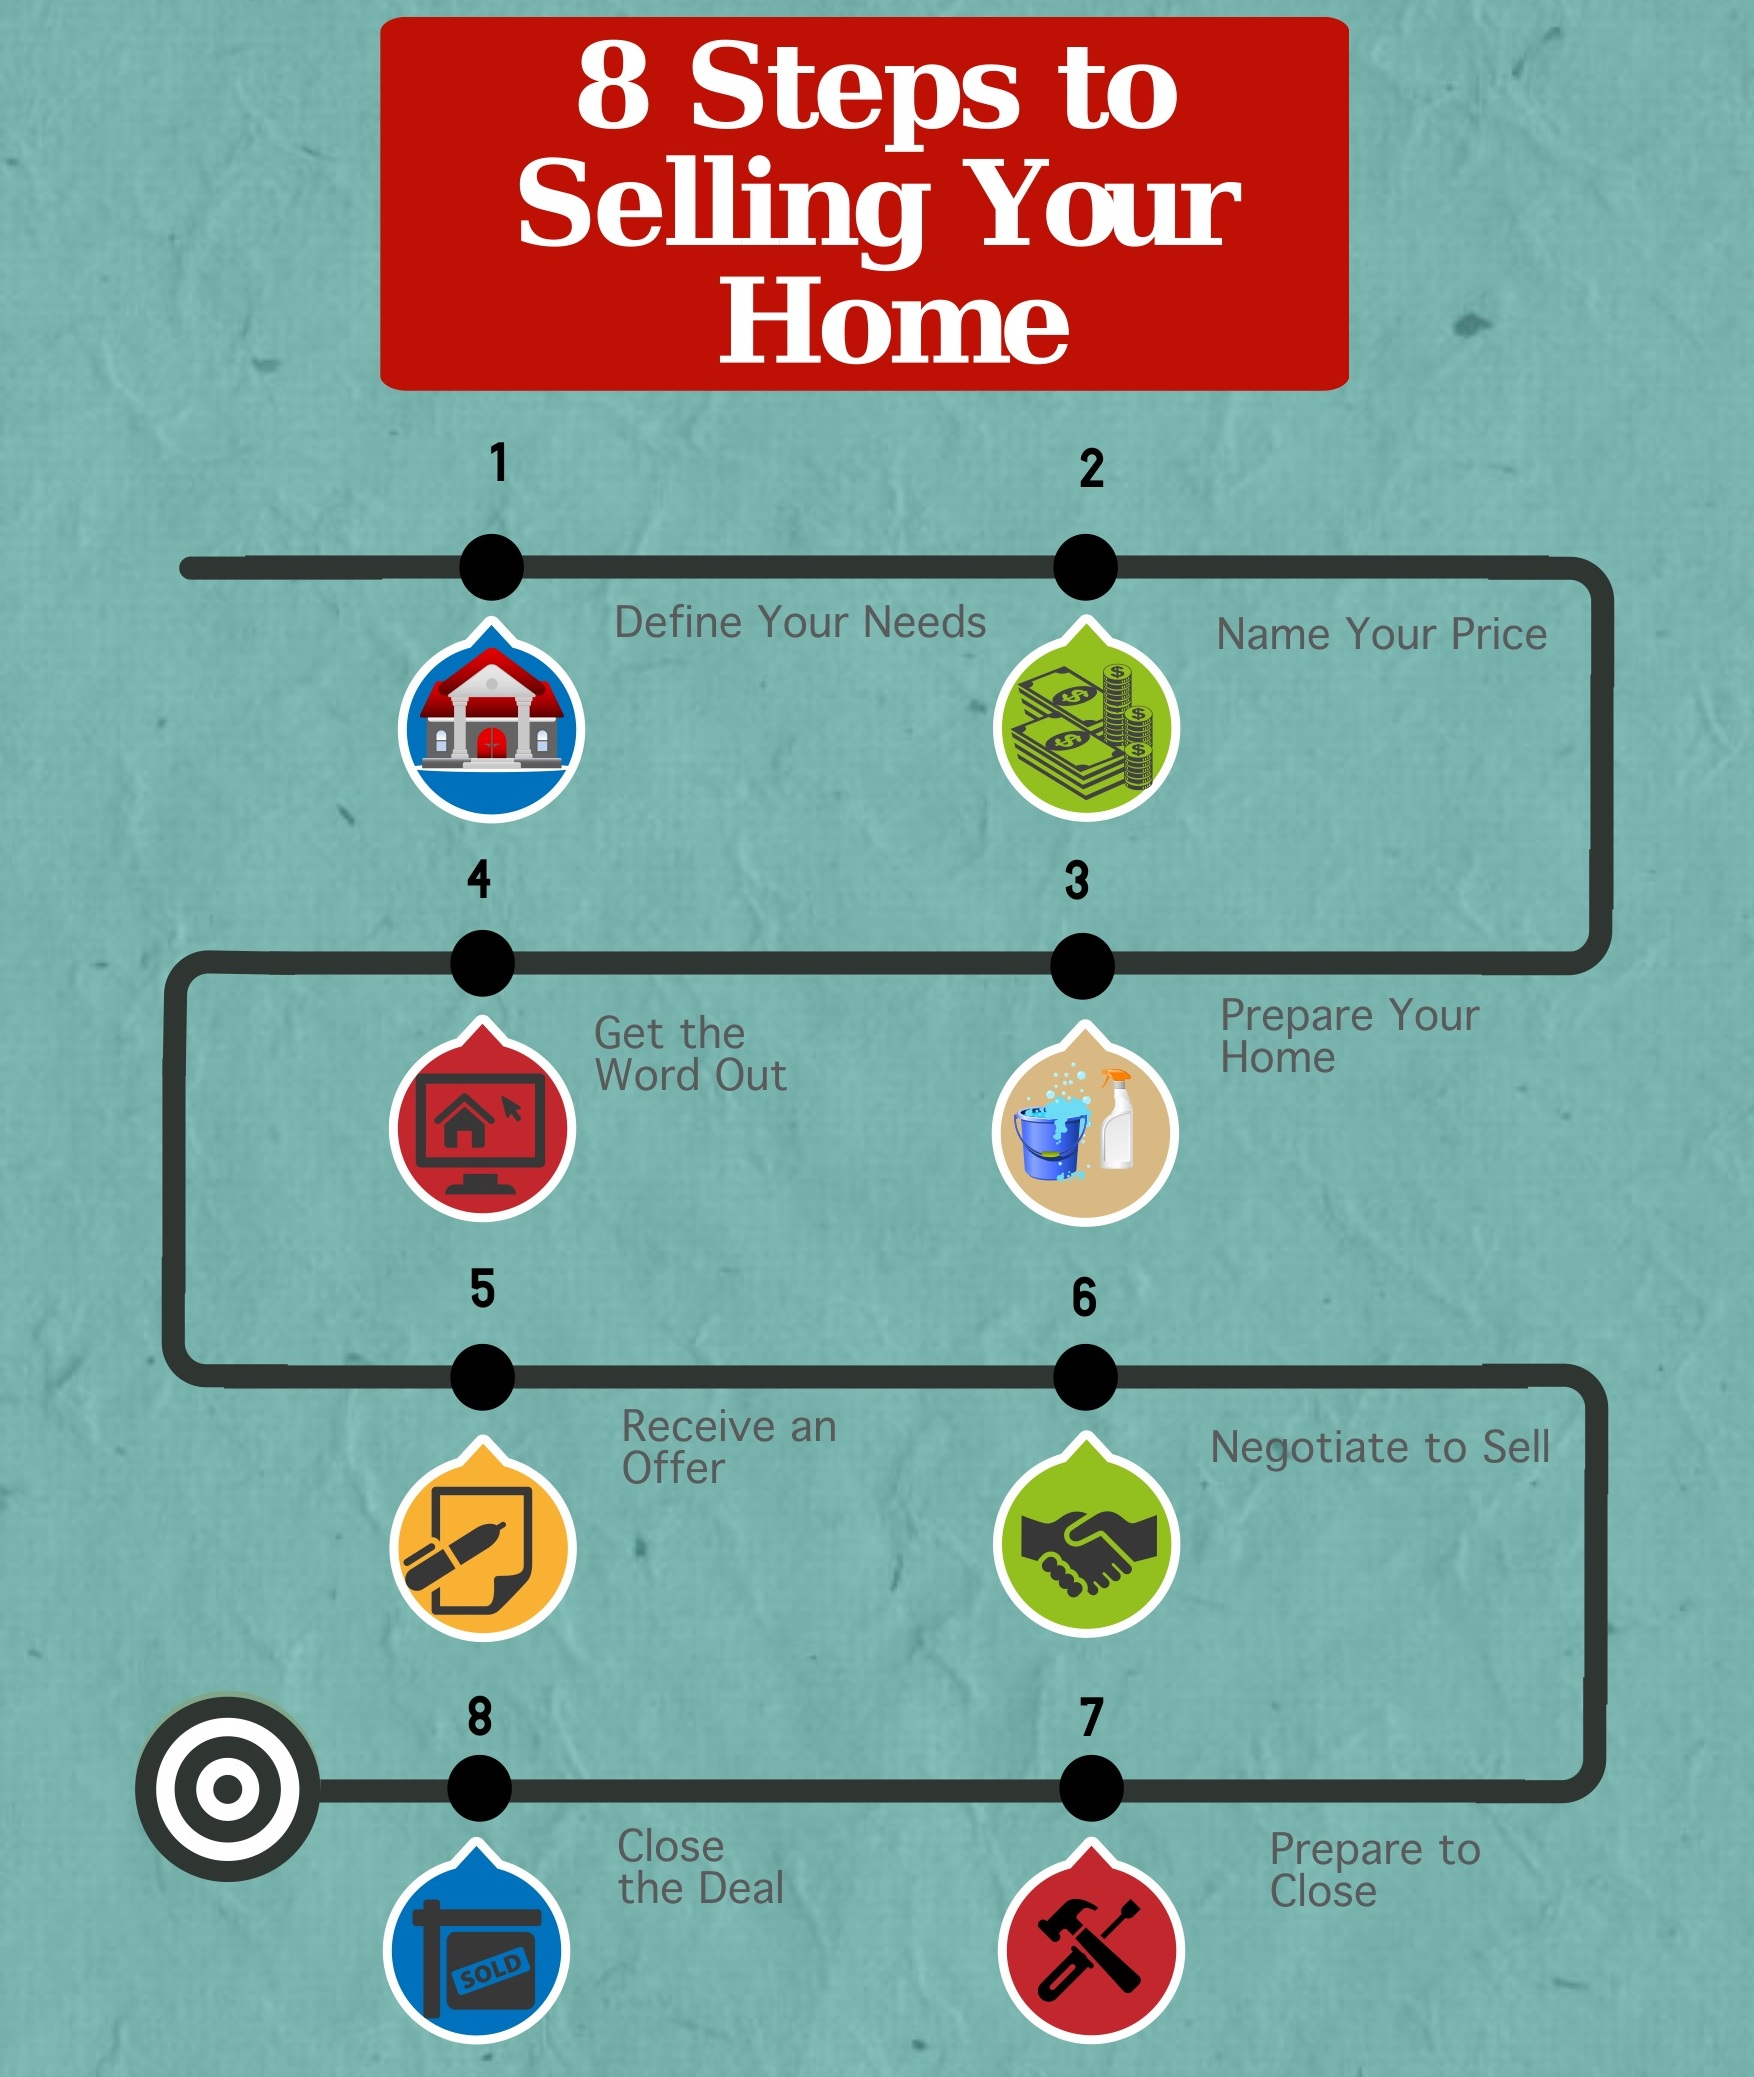 Eight Steps to Selling Your Home